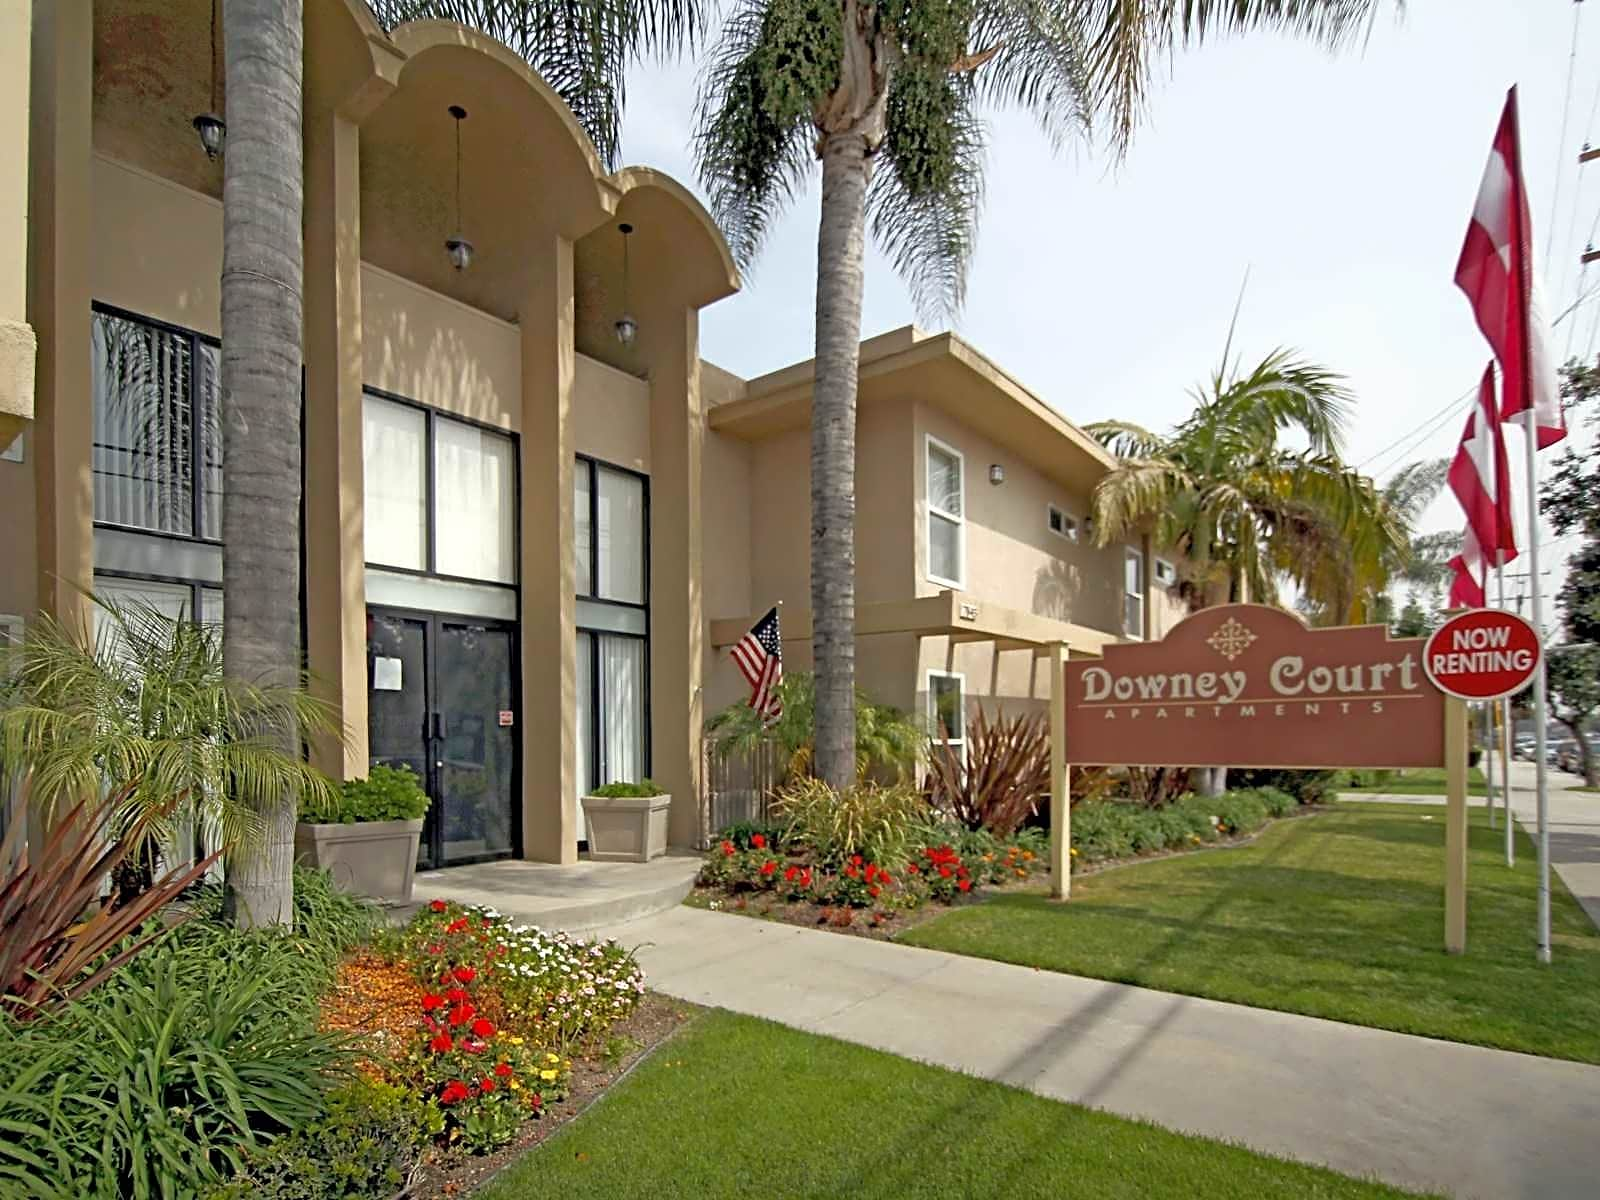 Downey Court Apartments Downey Ca 90241